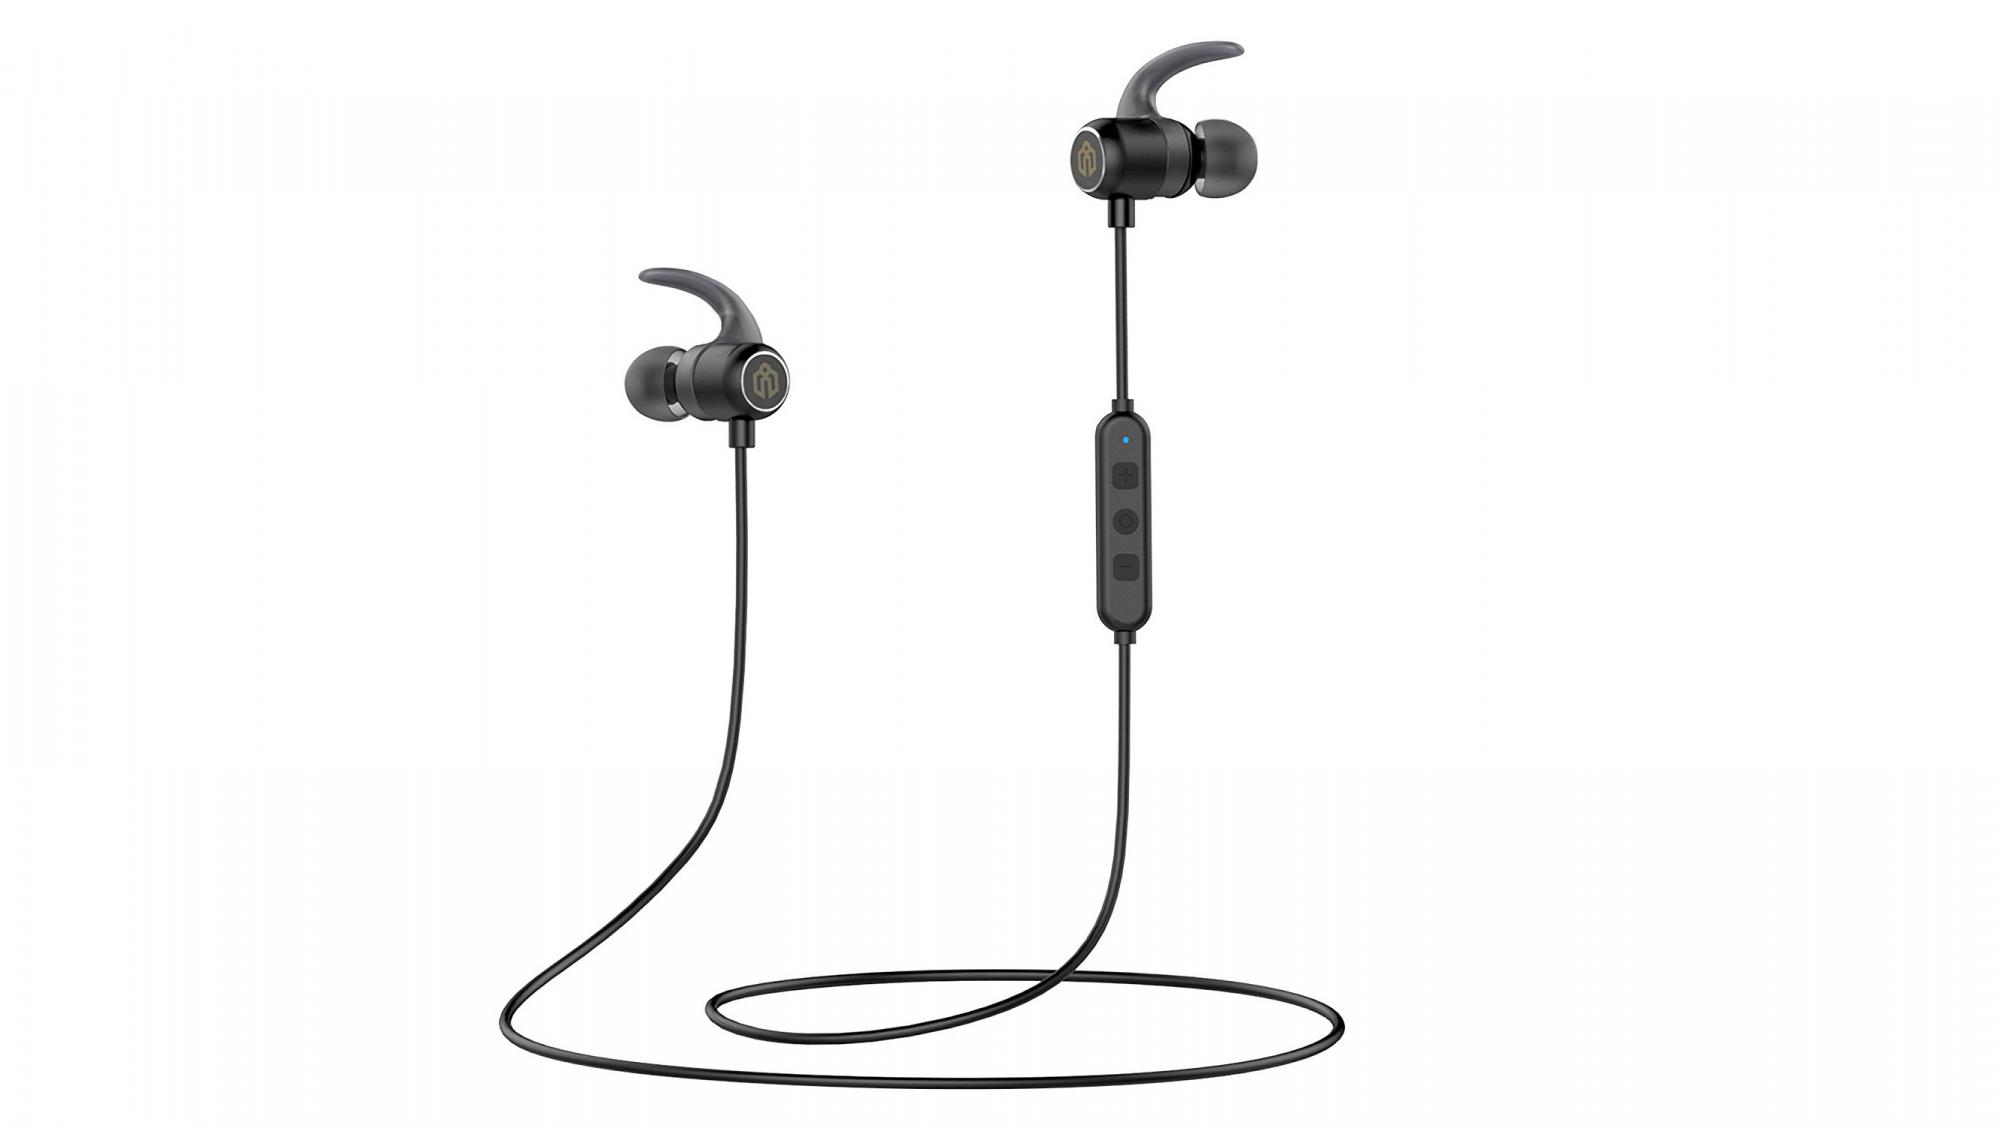 Iclever Xfree Mini Bluetooth Headphones Review in addition Steel Sliding Gate as well 1x8yv 05 Nissan Altima Dealer Says Short Harness moreover Core Reader furthermore Utility Asset Manager. on access control devices